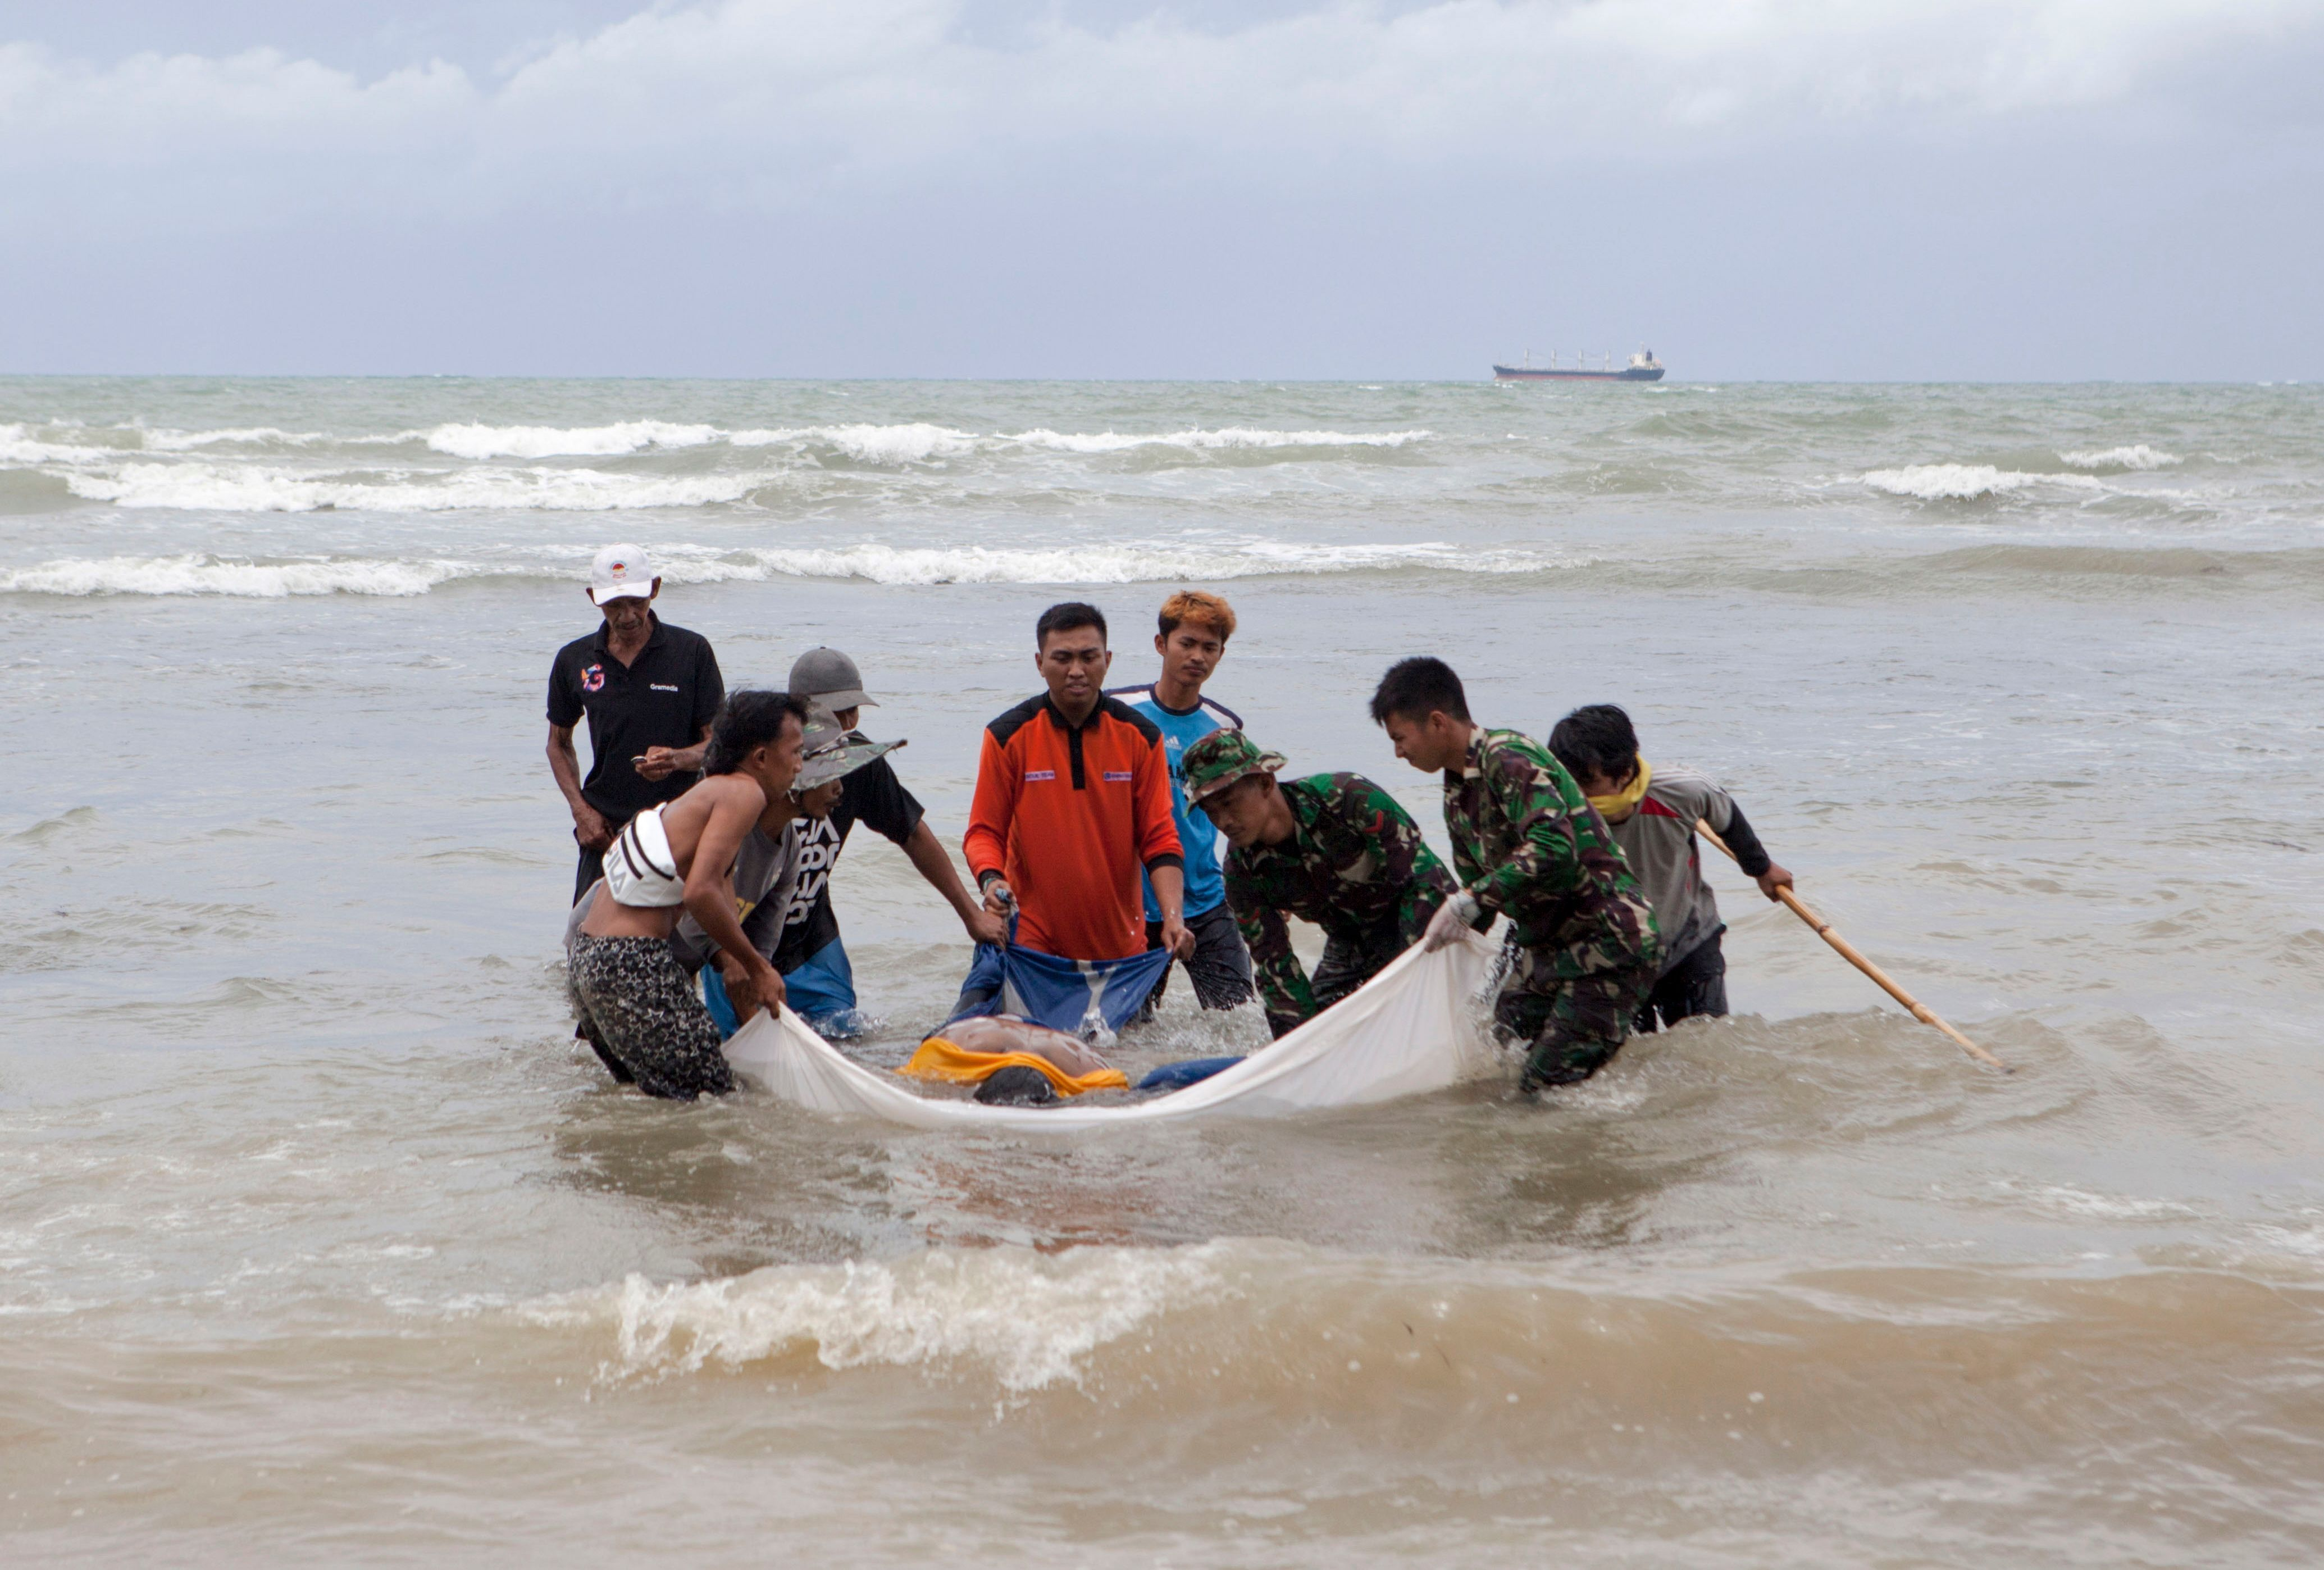 Indonesia's tsunami on Saturday, which killed at least 373